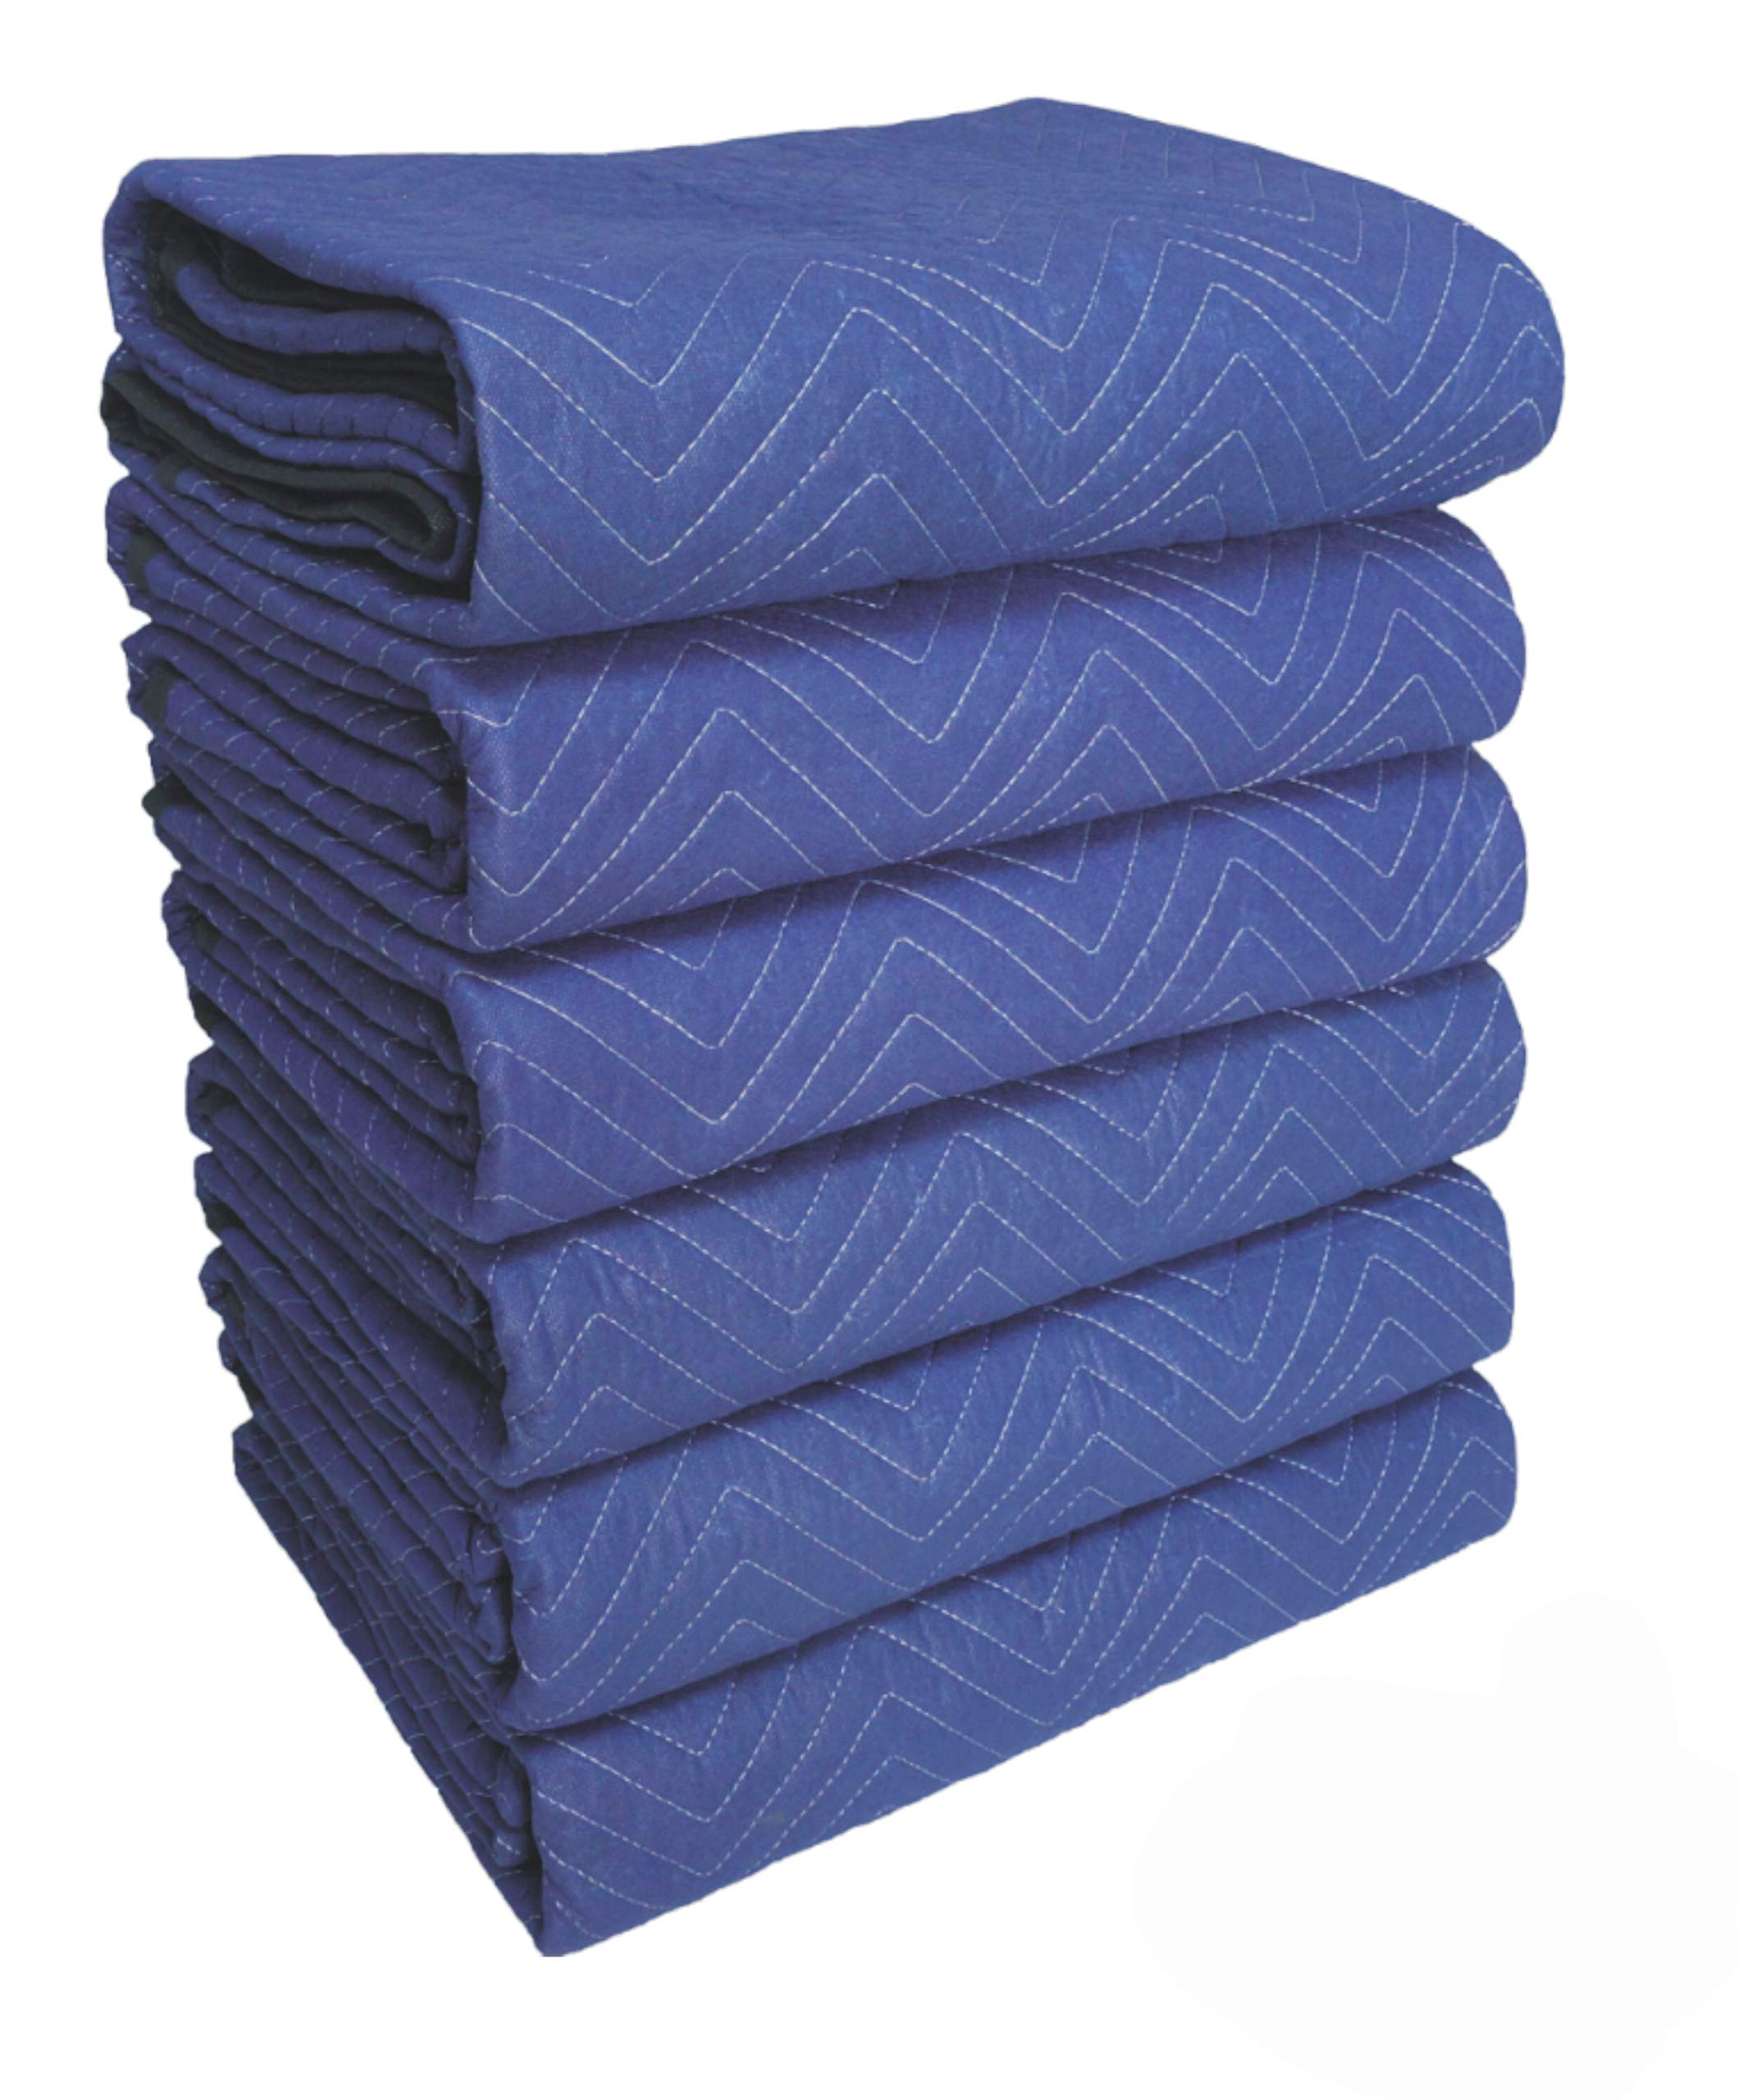 SOMIDE Deluxe Pro Moving Blanket, 50 Lbs/doz, 6 Pack, 72'' x 80'' - Thick Padding, Colorfast, Blue/Blue - Professional Quilted Furniture Blankets